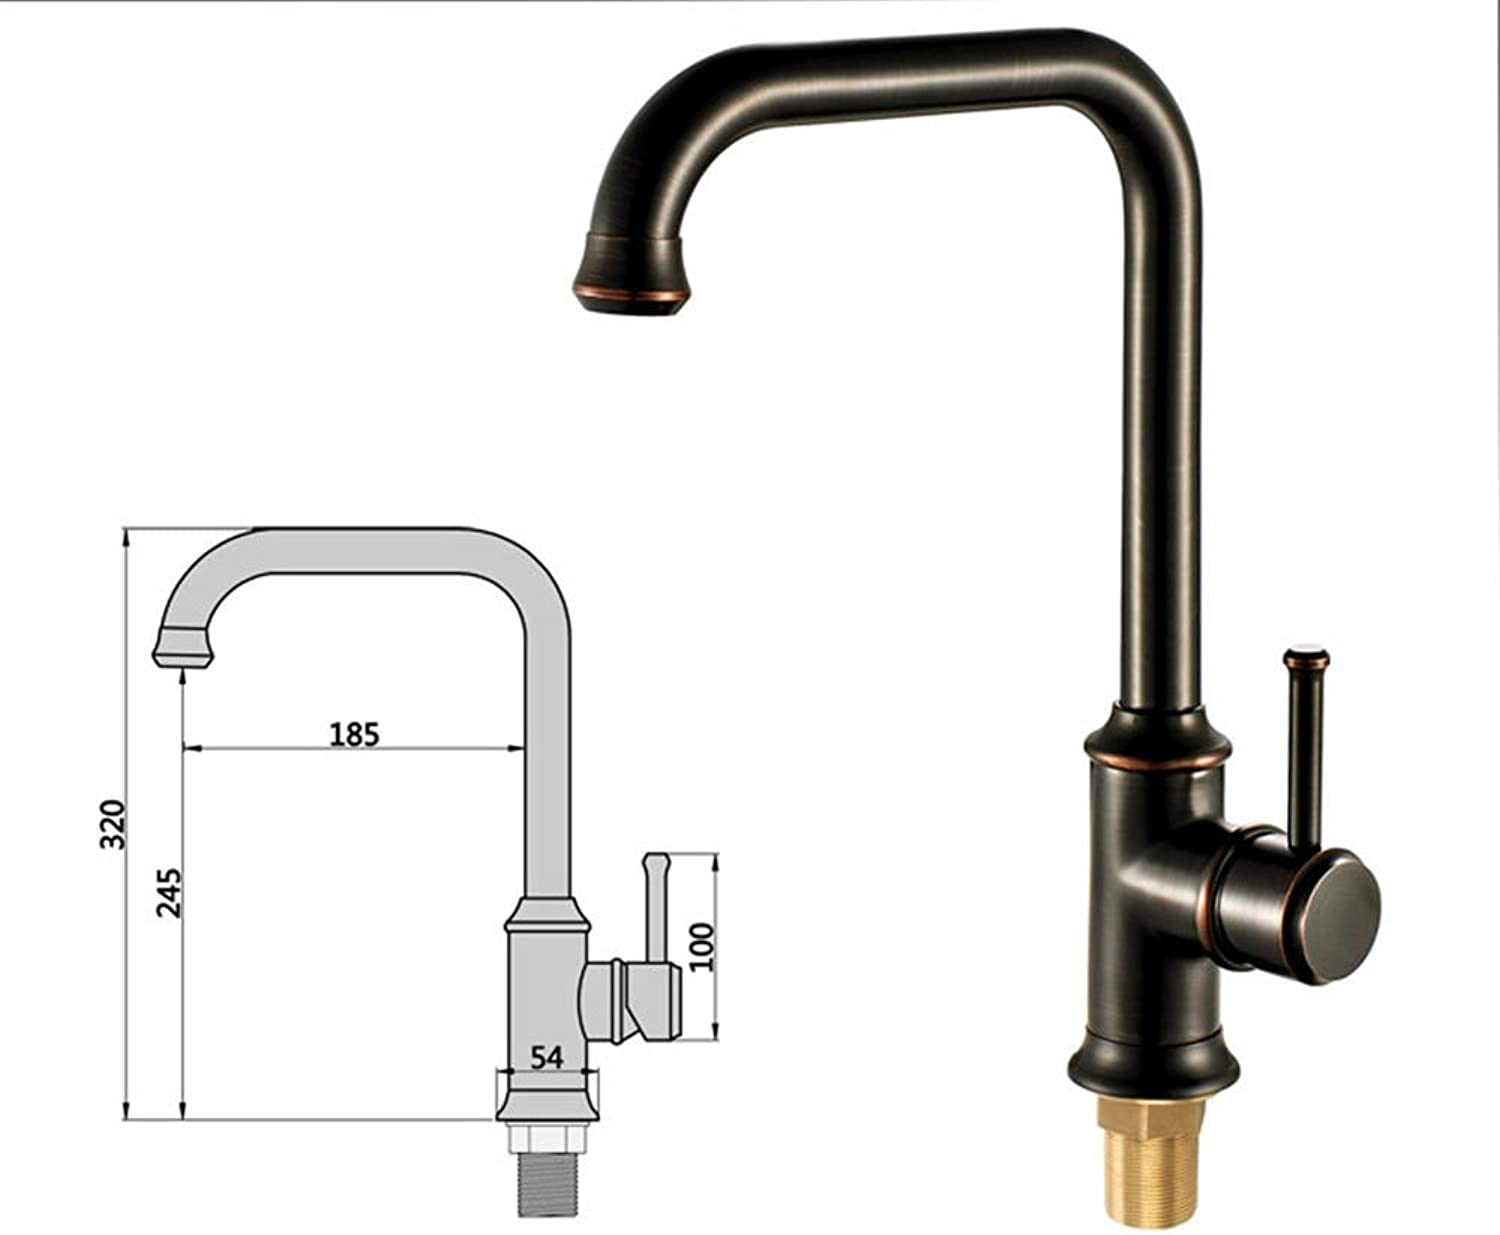 Bijjaladeva Antique Kitchen Sink Mixer Tap Antique Black 古 color Kitchen Faucet Bronze Basin Mixer Throughout The Course of hot and Cold Water Mixing Valve can be redated